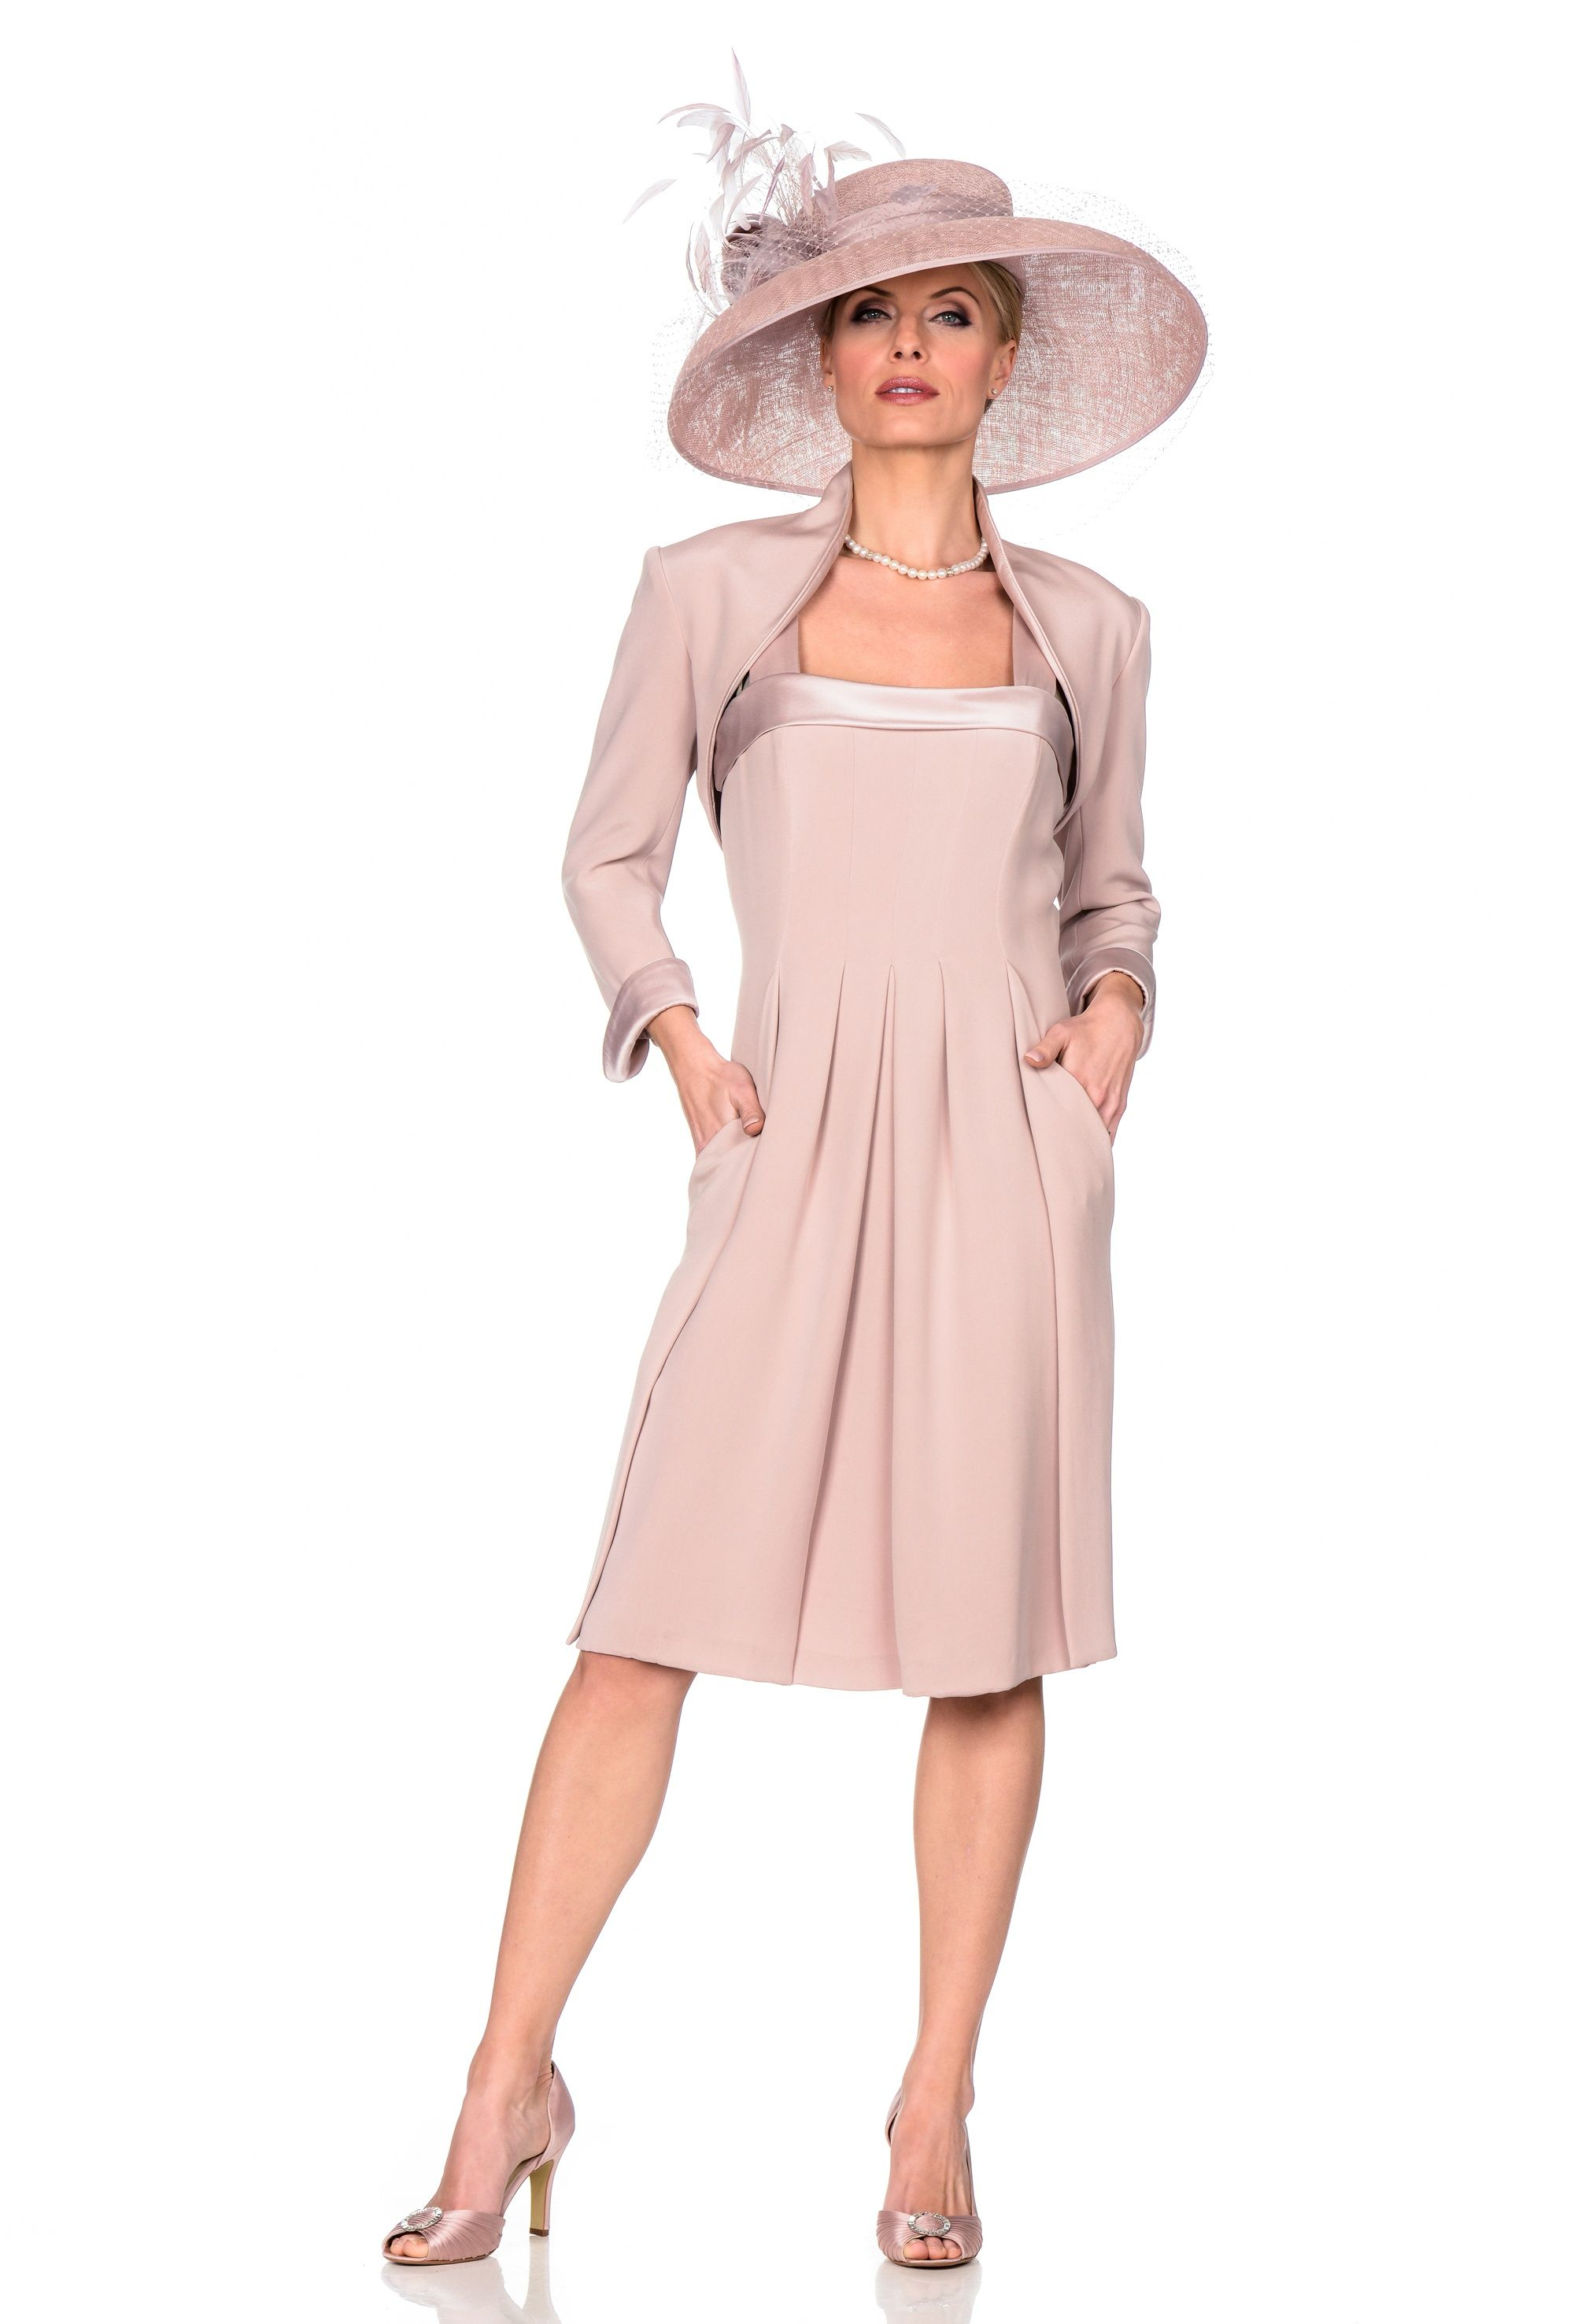 Dress with jackets for special occasions dress bolero for Young wedding guest dresses